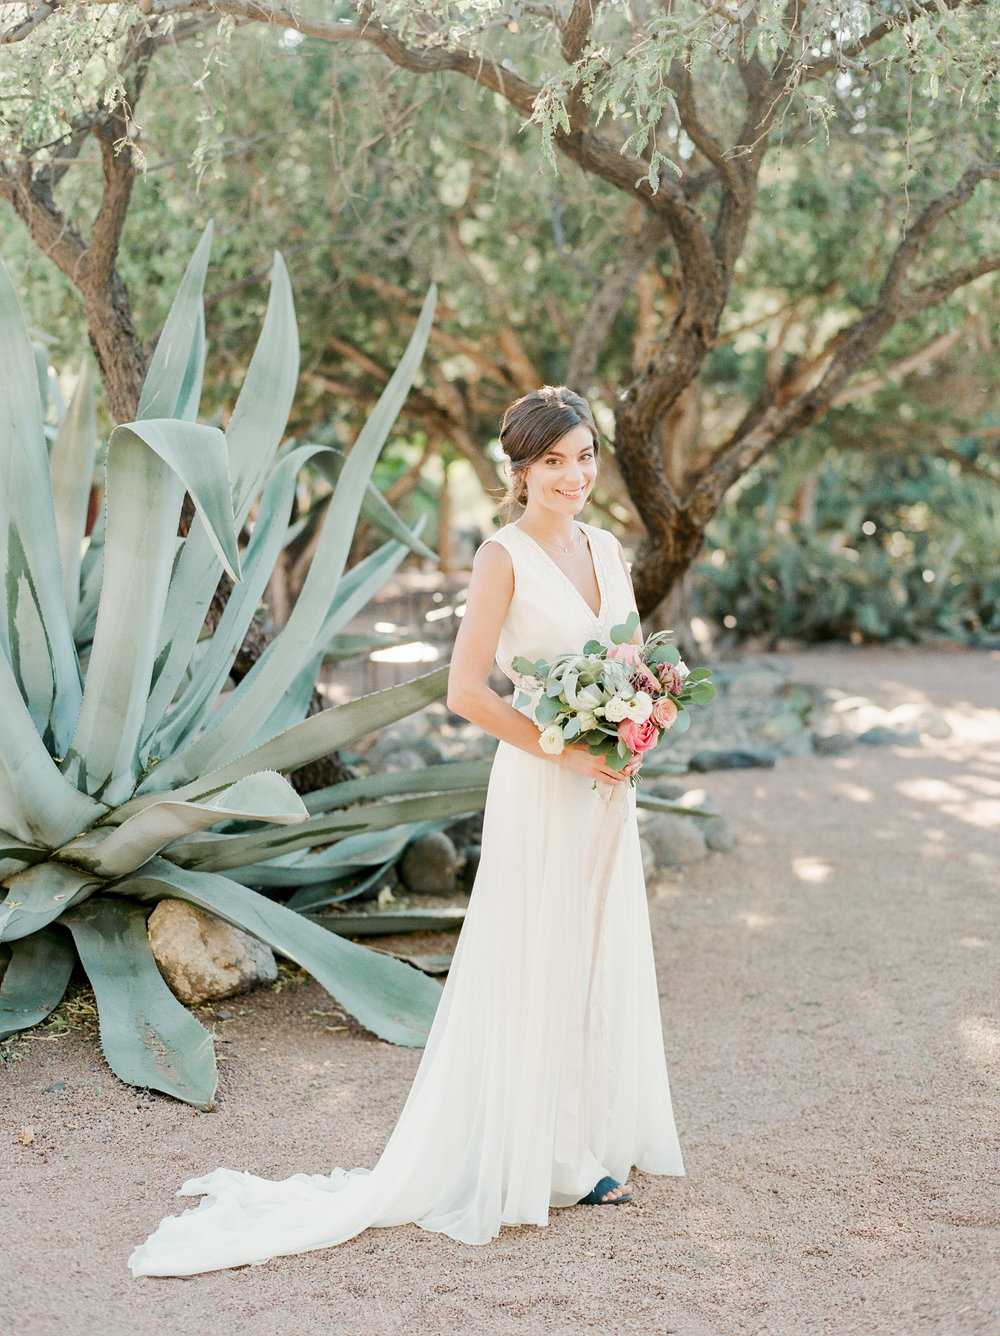 An Intimate Sedona Wedding Nestled in the Arizona Red Rocks  - Tremaine Ranch - AZ Arizona Wedding & Event, Vintage, Furniture, Tableware, & Specialty Rentals in Phoenix, Tucson, Flagstaff, Sedona, Tempe, Chandler, Mesa, Gilbert, Prescott, Payson 517.jpg